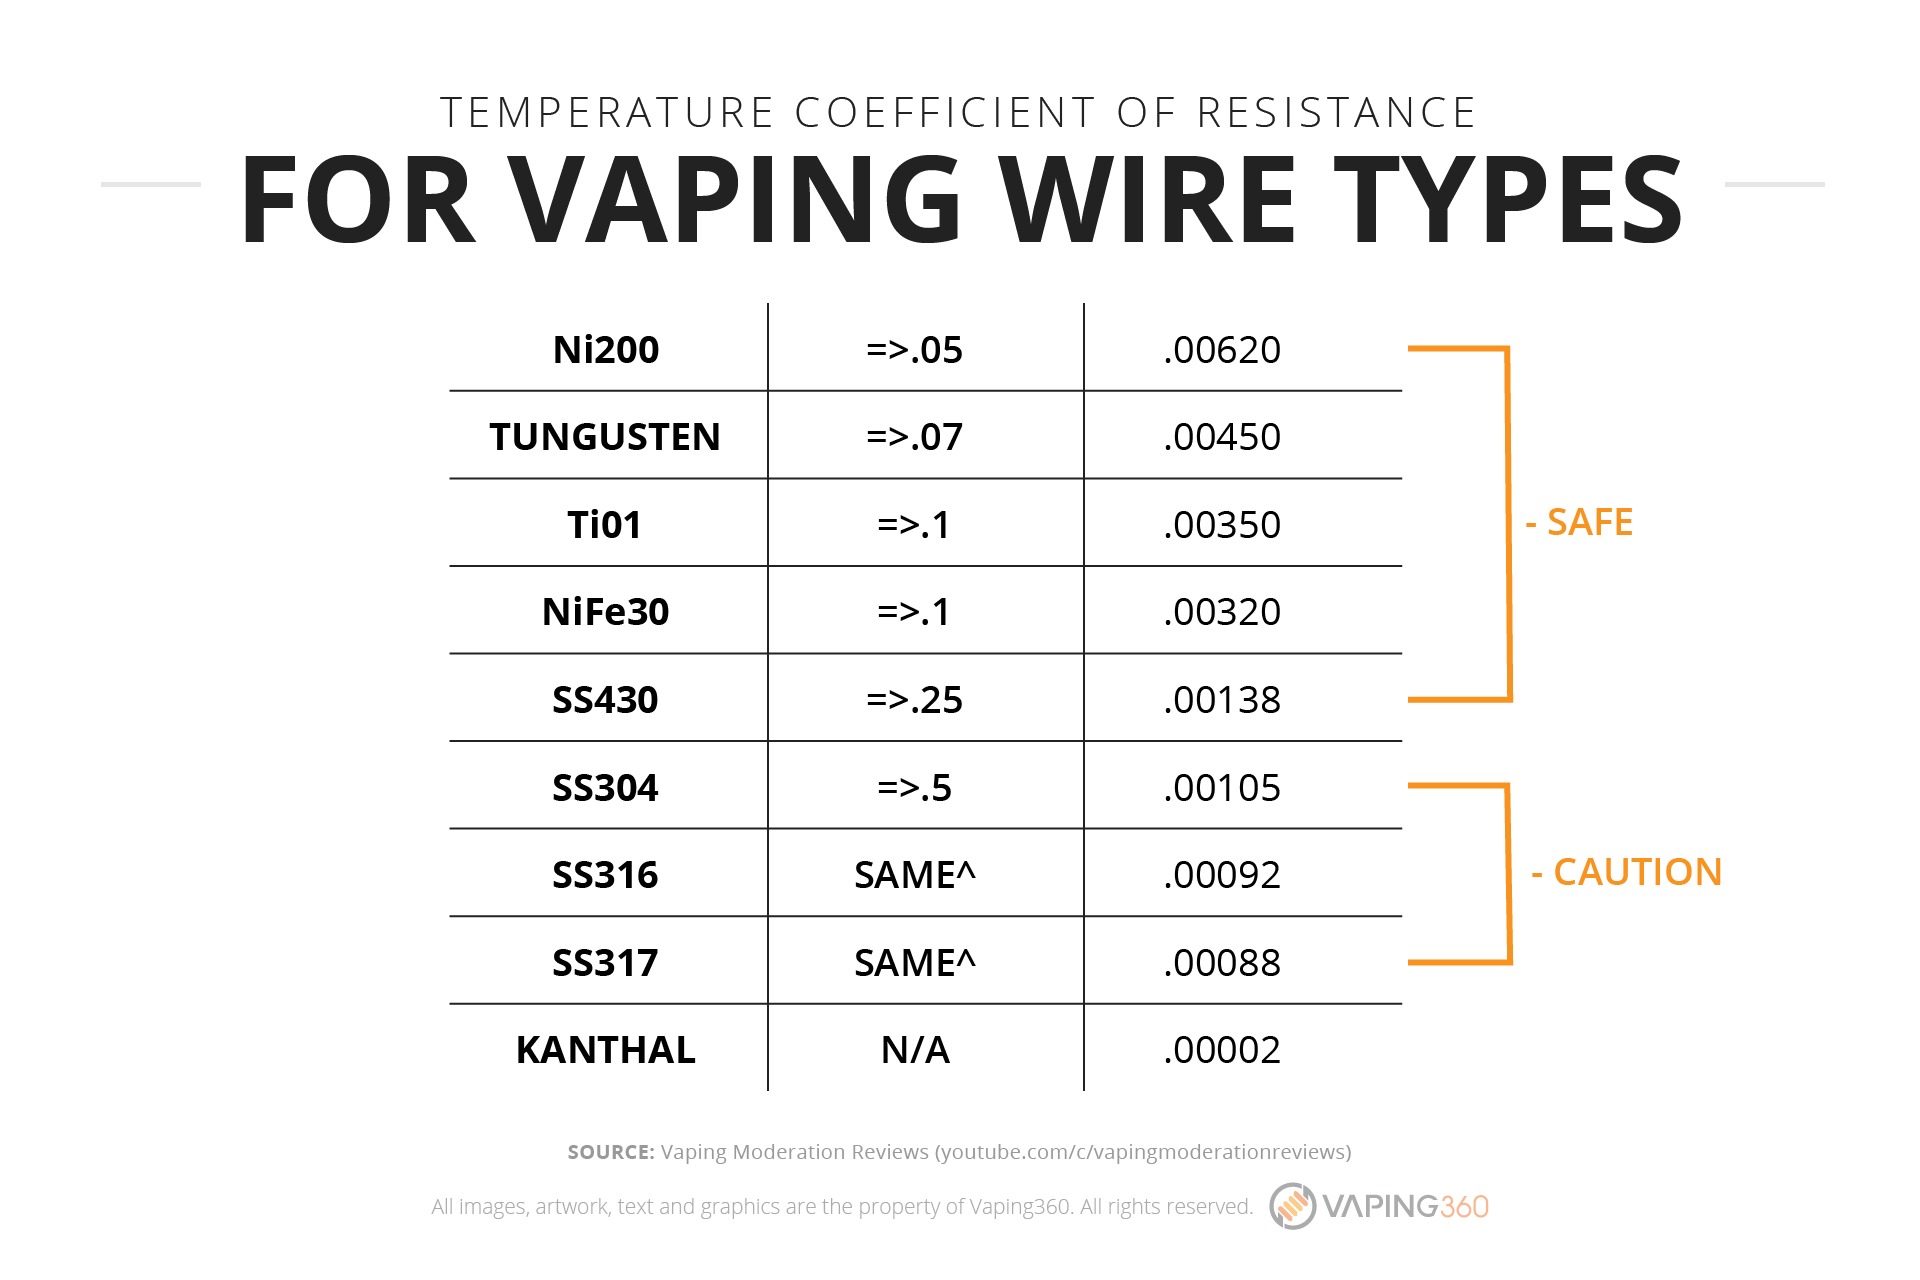 temperature-coefficient-of-resistance-for-vaping-wire-types